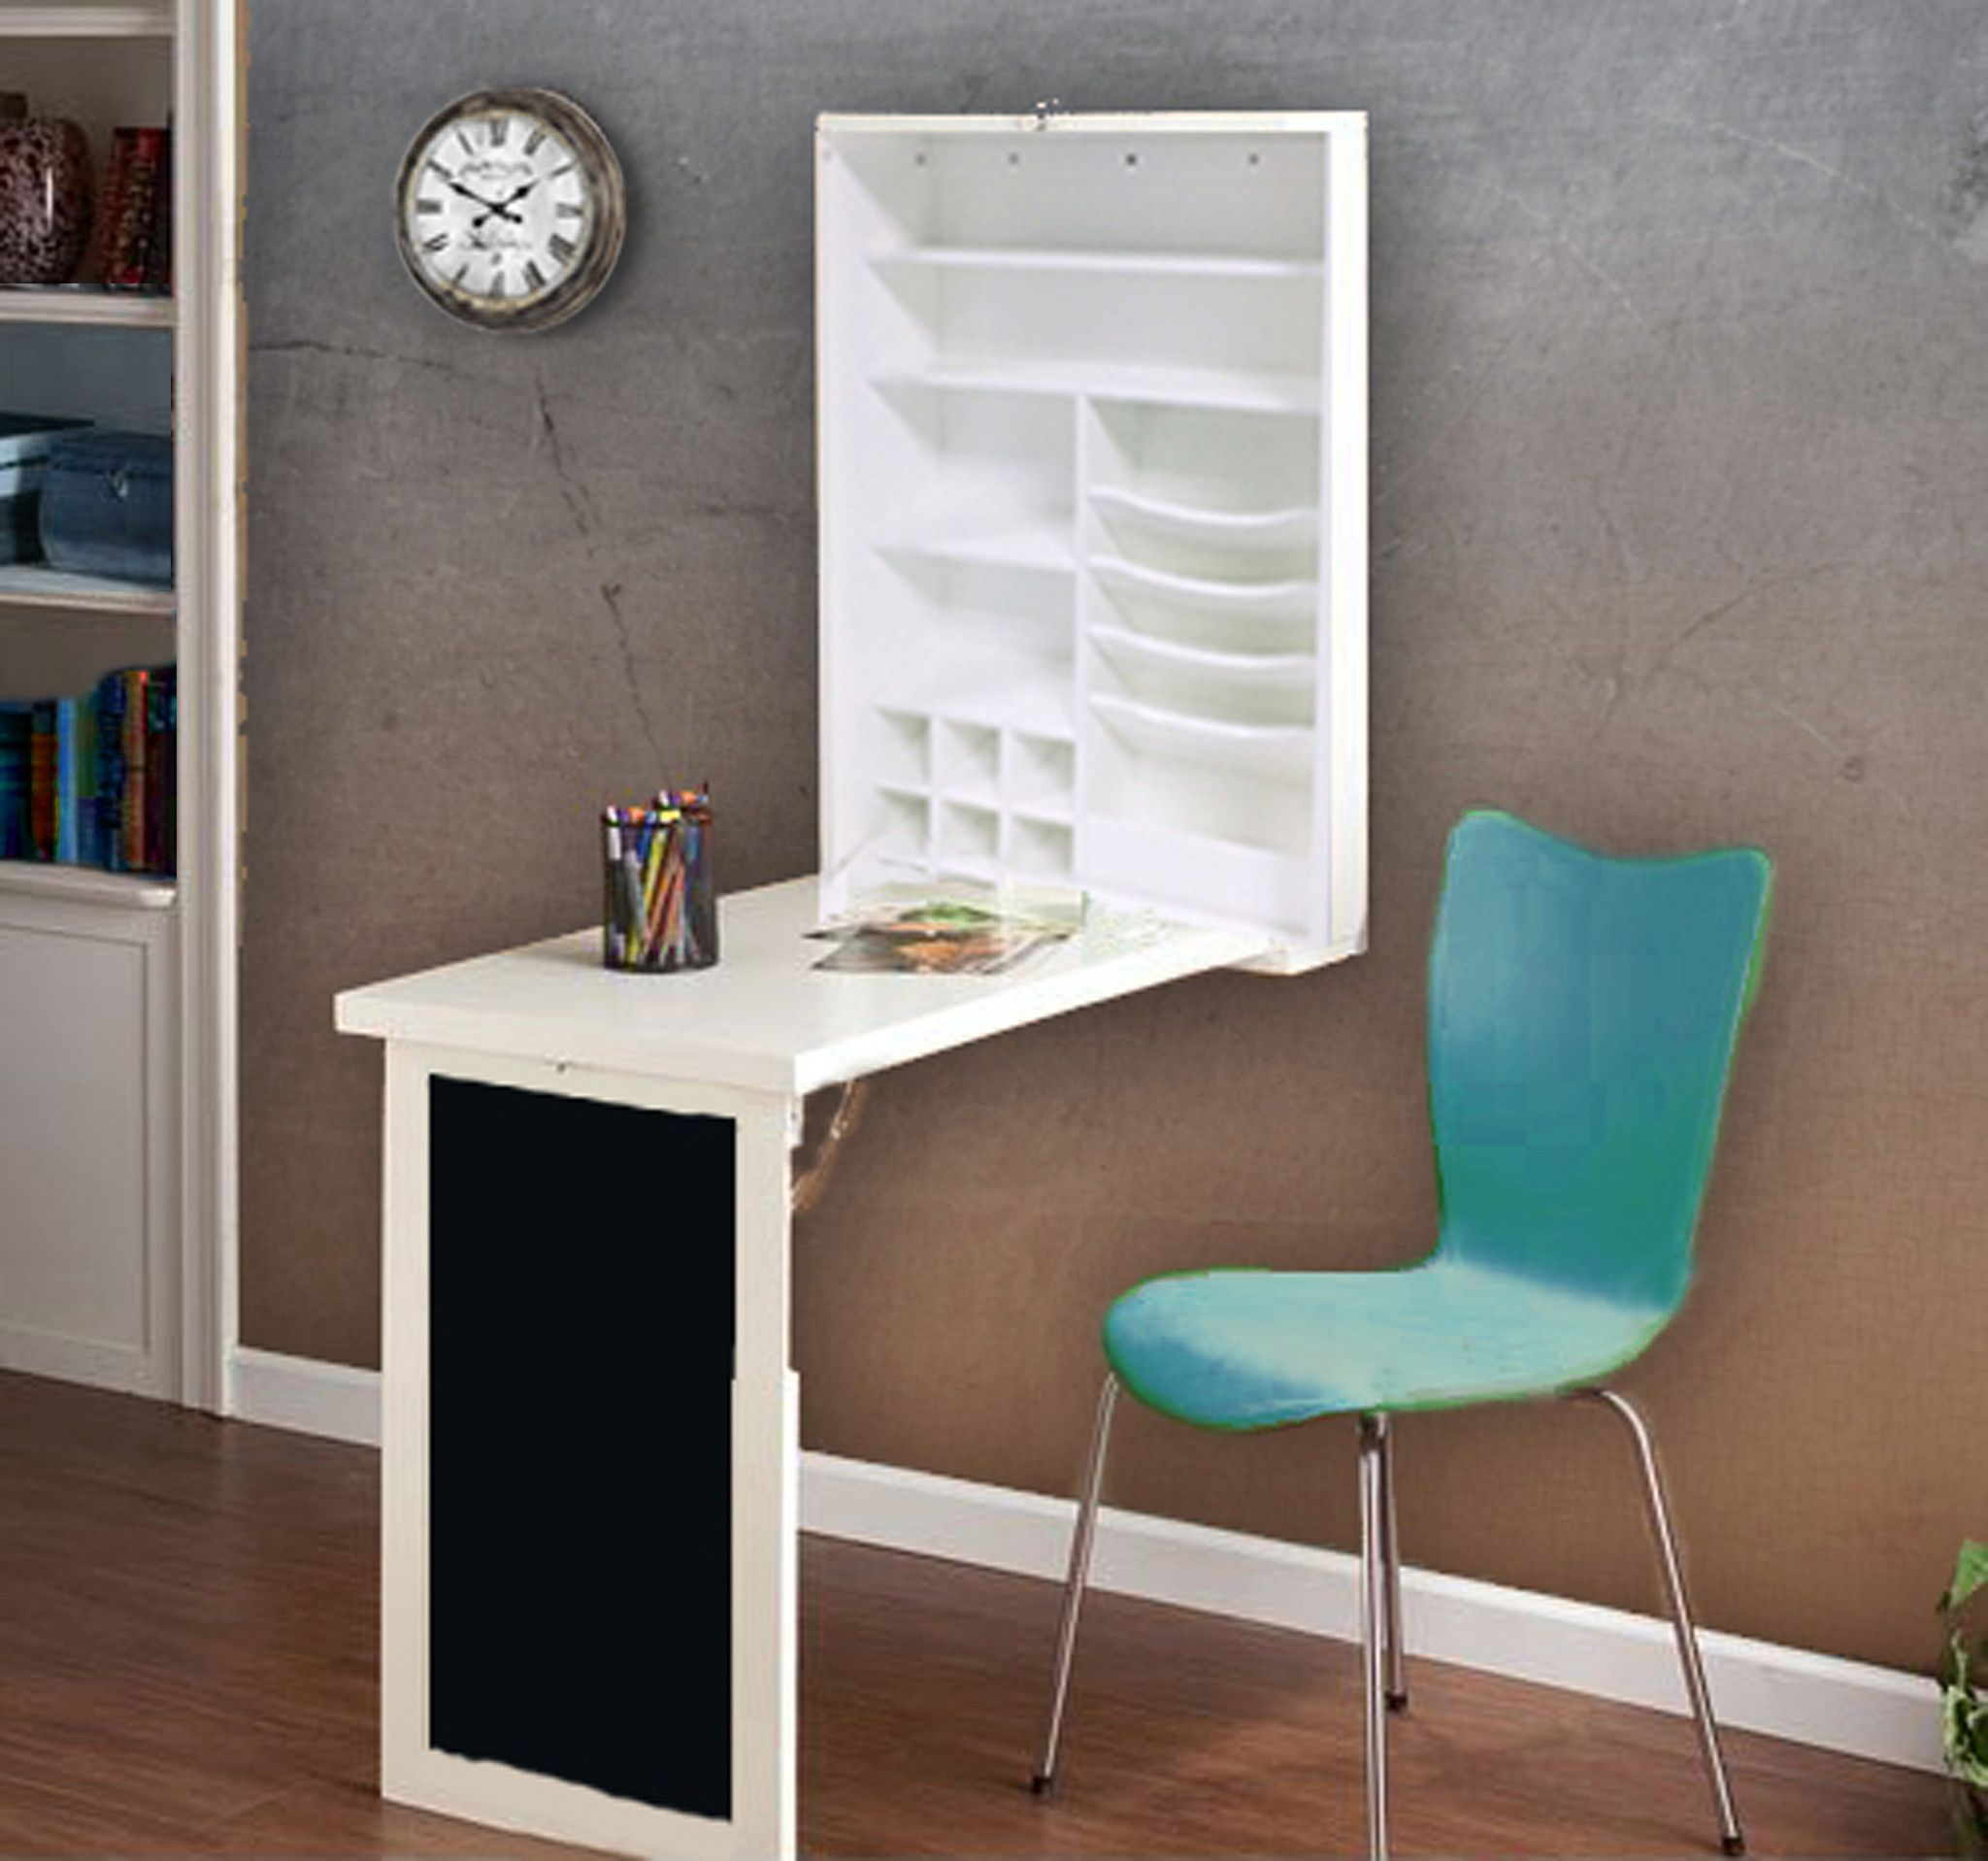 Utopia Alley Fold Down Desk Table Wall Cabinet With Chalkboard White Floating Desk Fold Down Desk Home